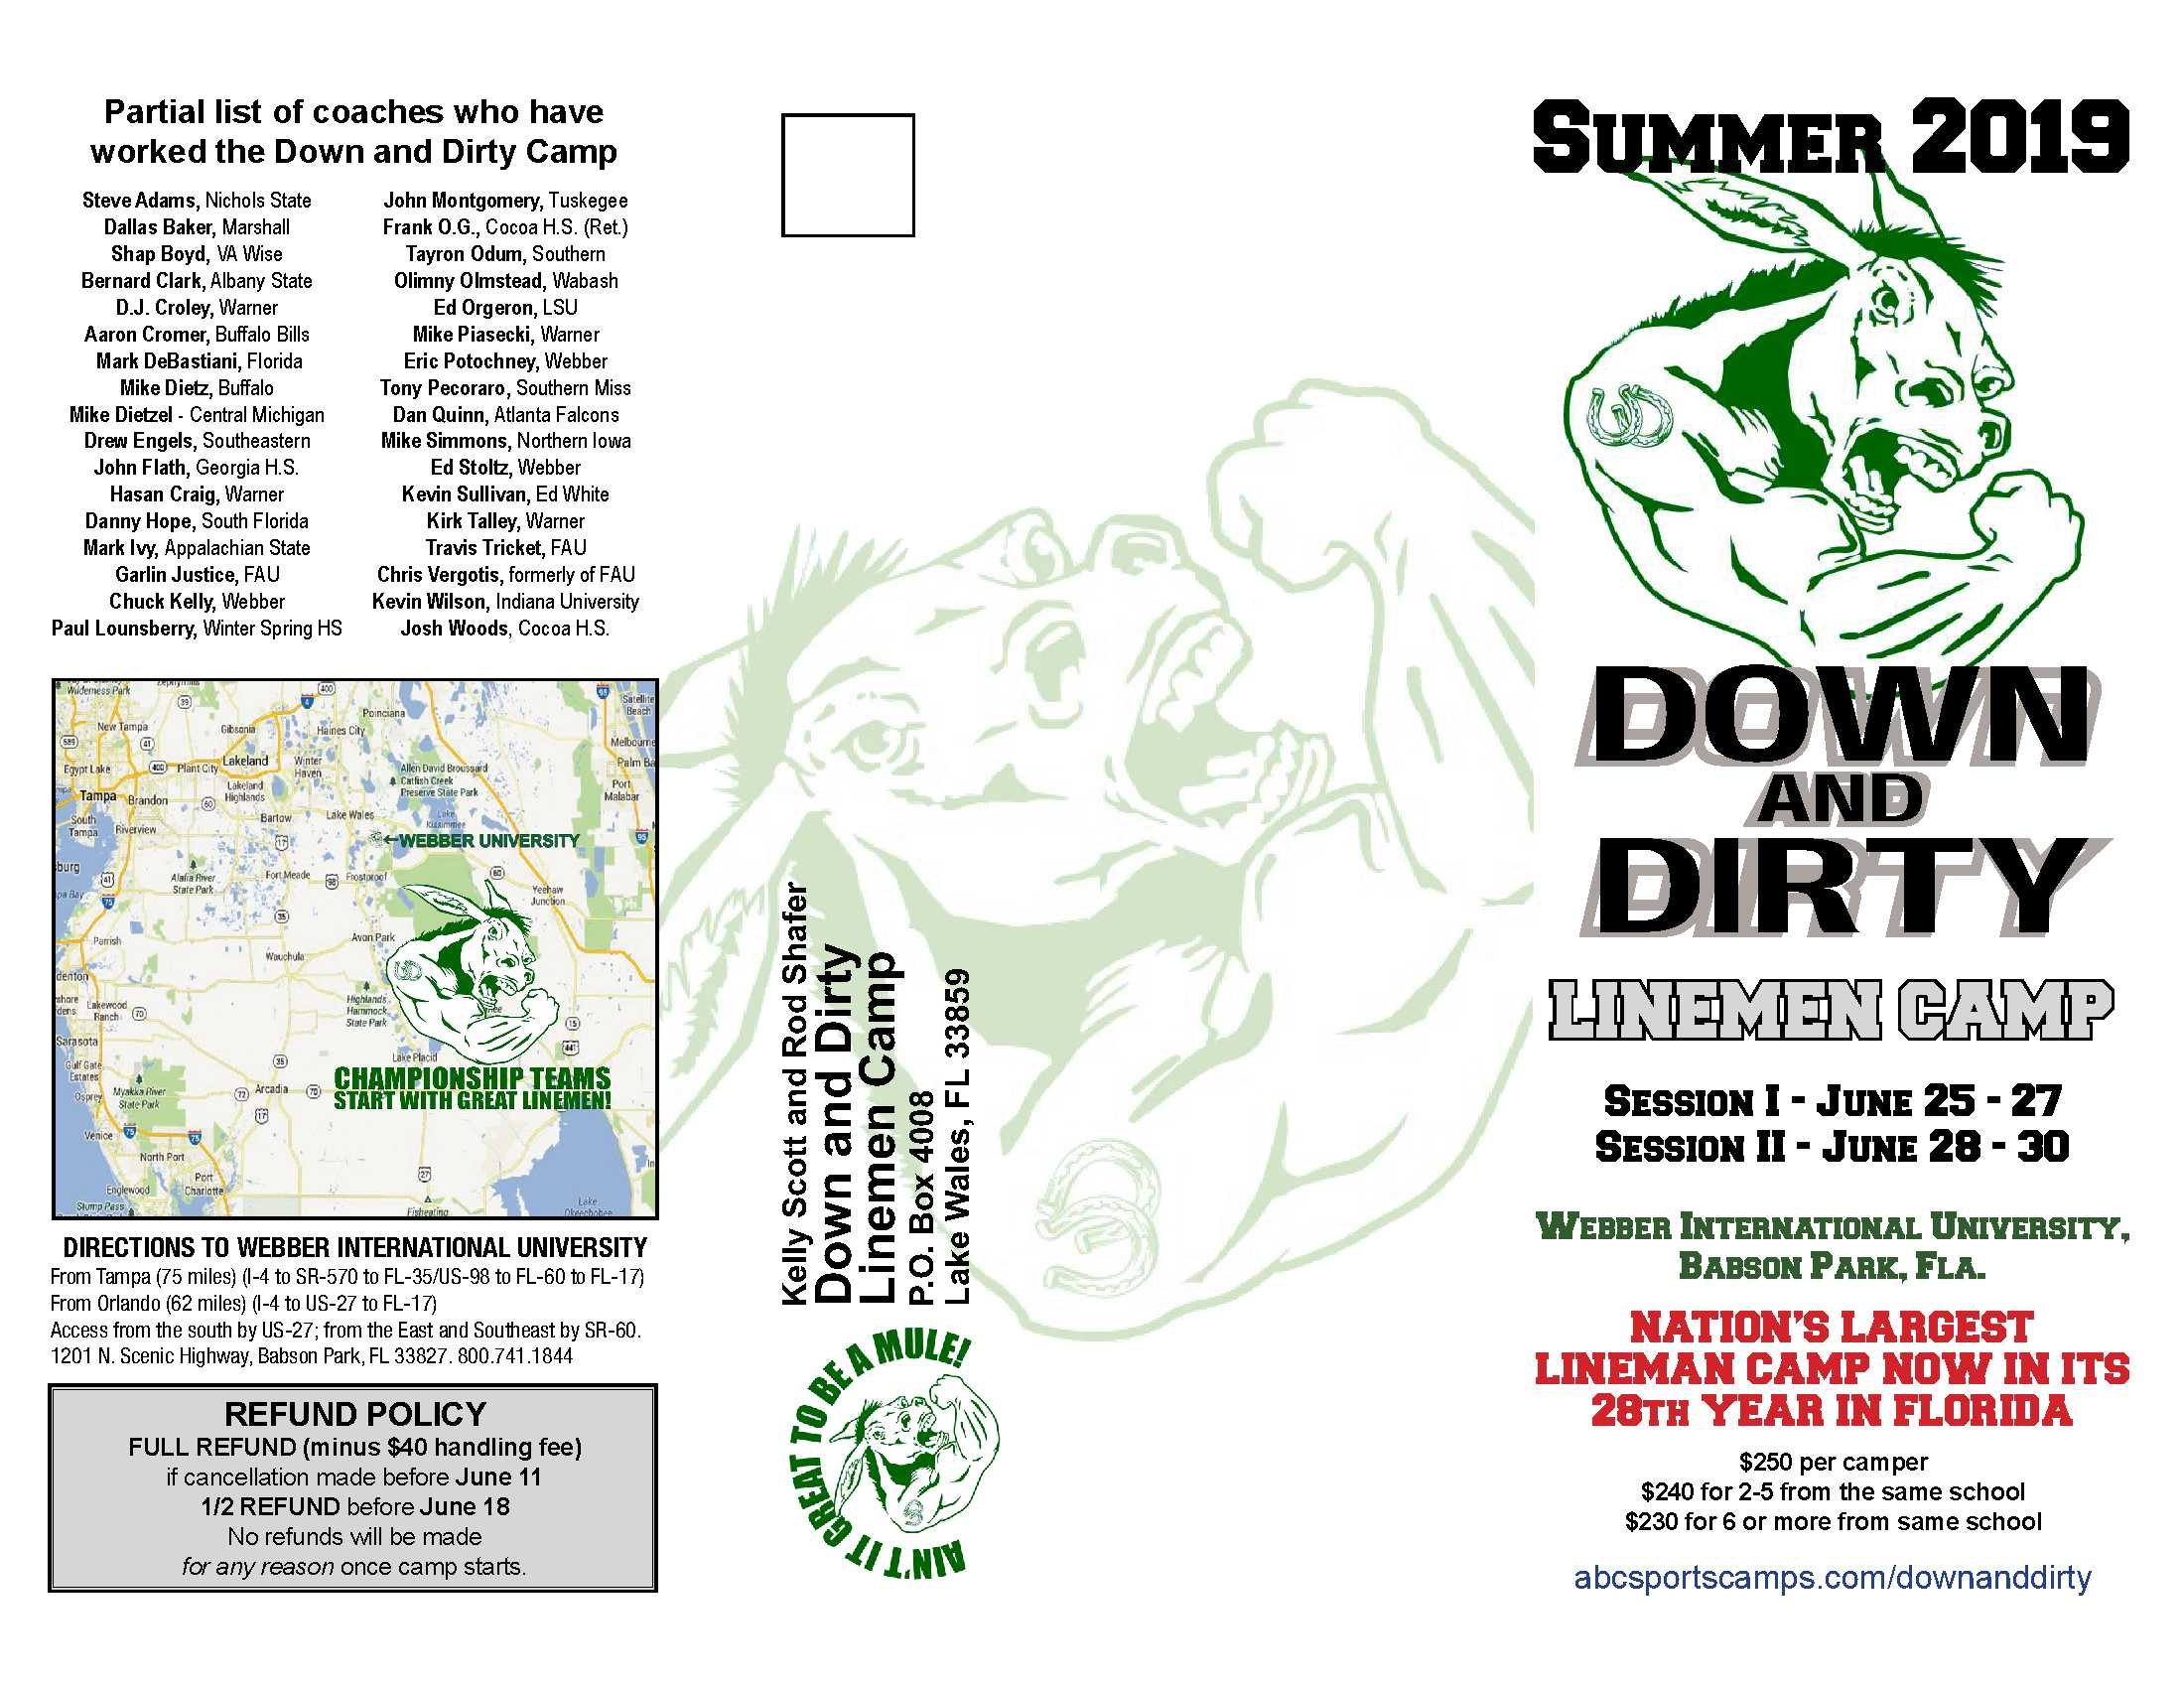 Down-and-Dirty Lineman Camp 2019